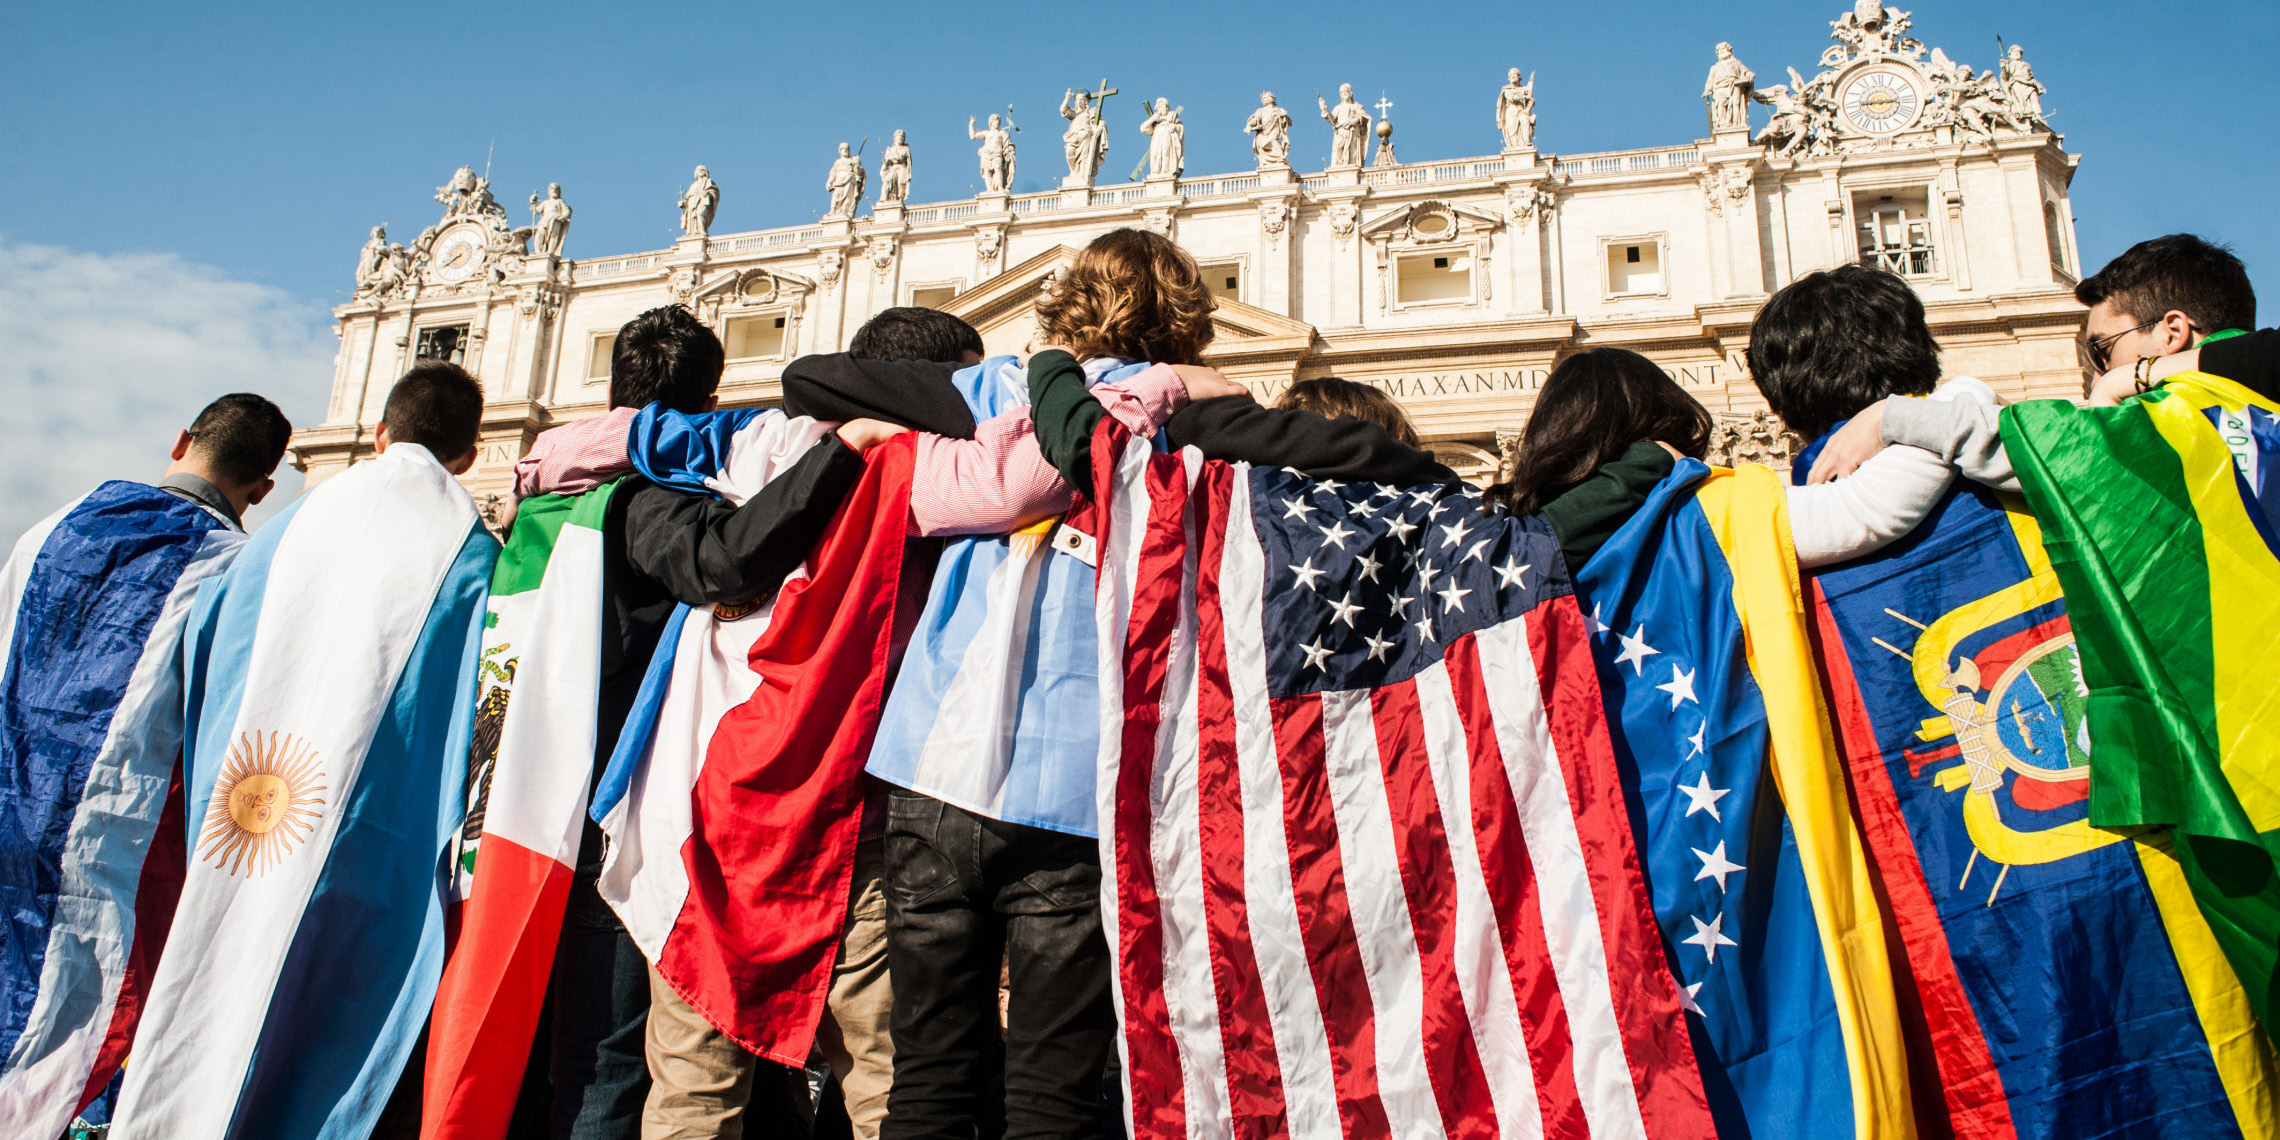 web-rome-st-peter-audience-young-people-flags-c2a9m-miglioratocppciric